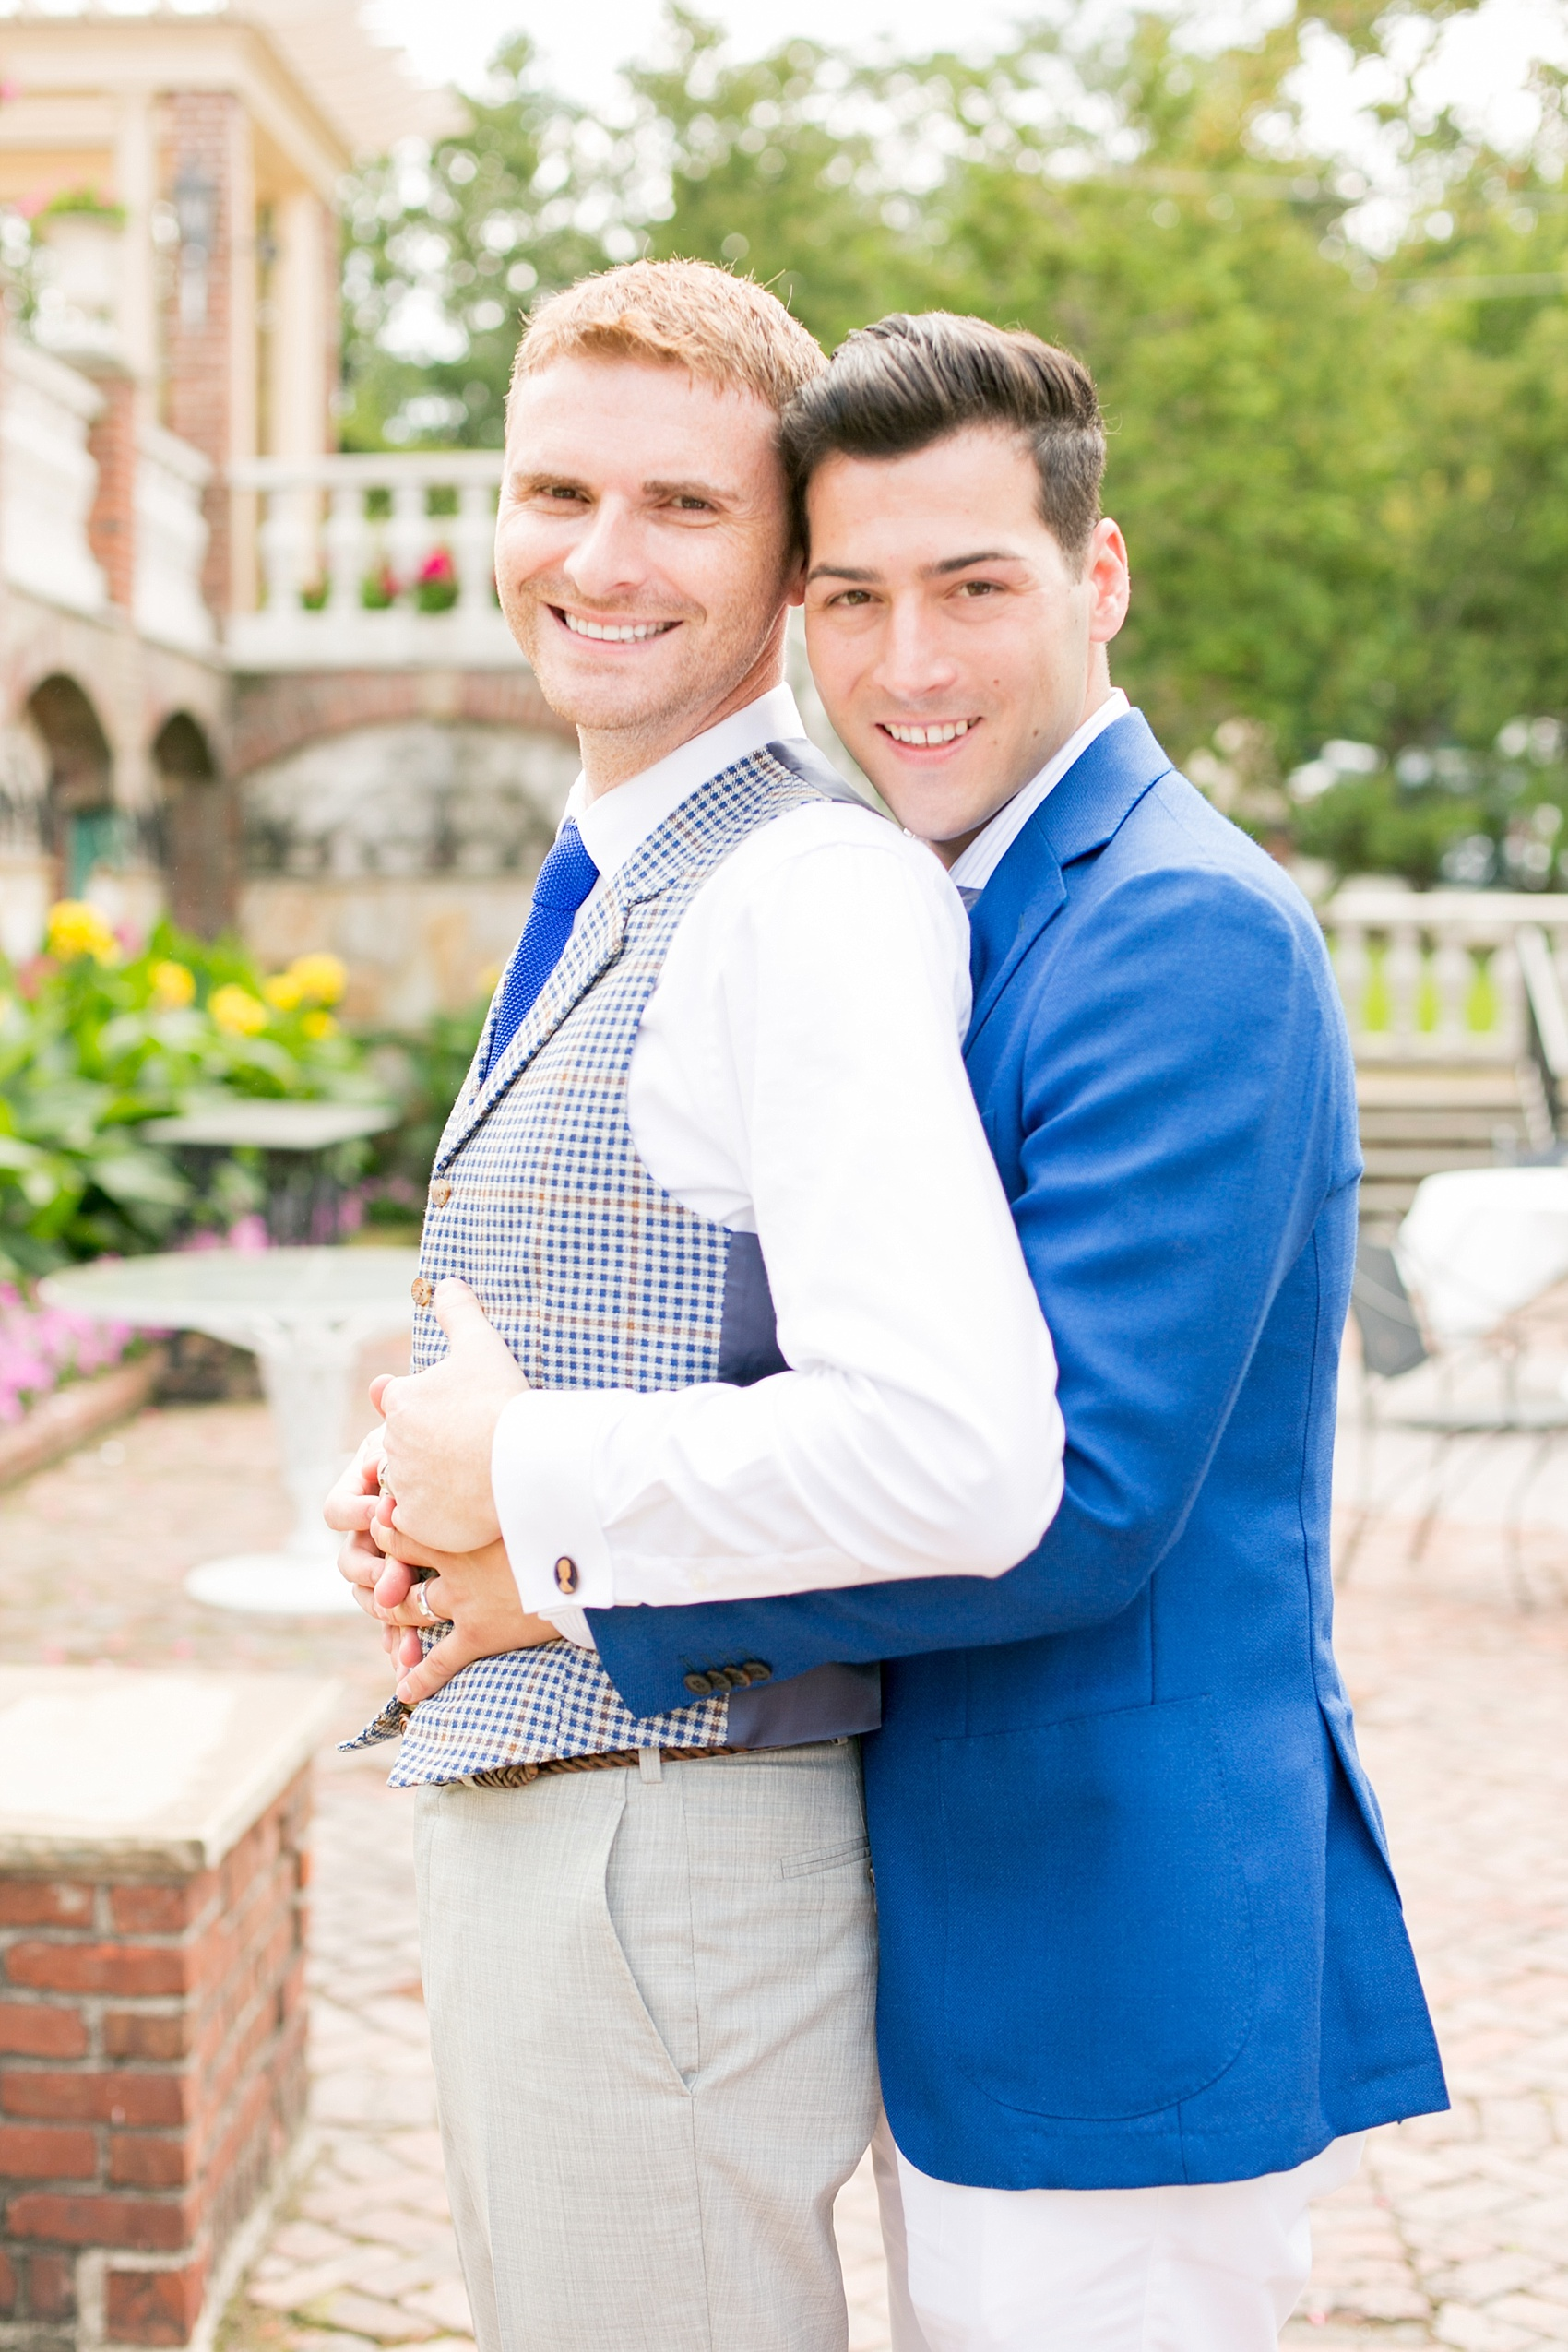 Mikkel Paige Photography photos of a gay wedding at The Manor in West Orange, NJ. The grooms wore a plaid vest and blue suit.